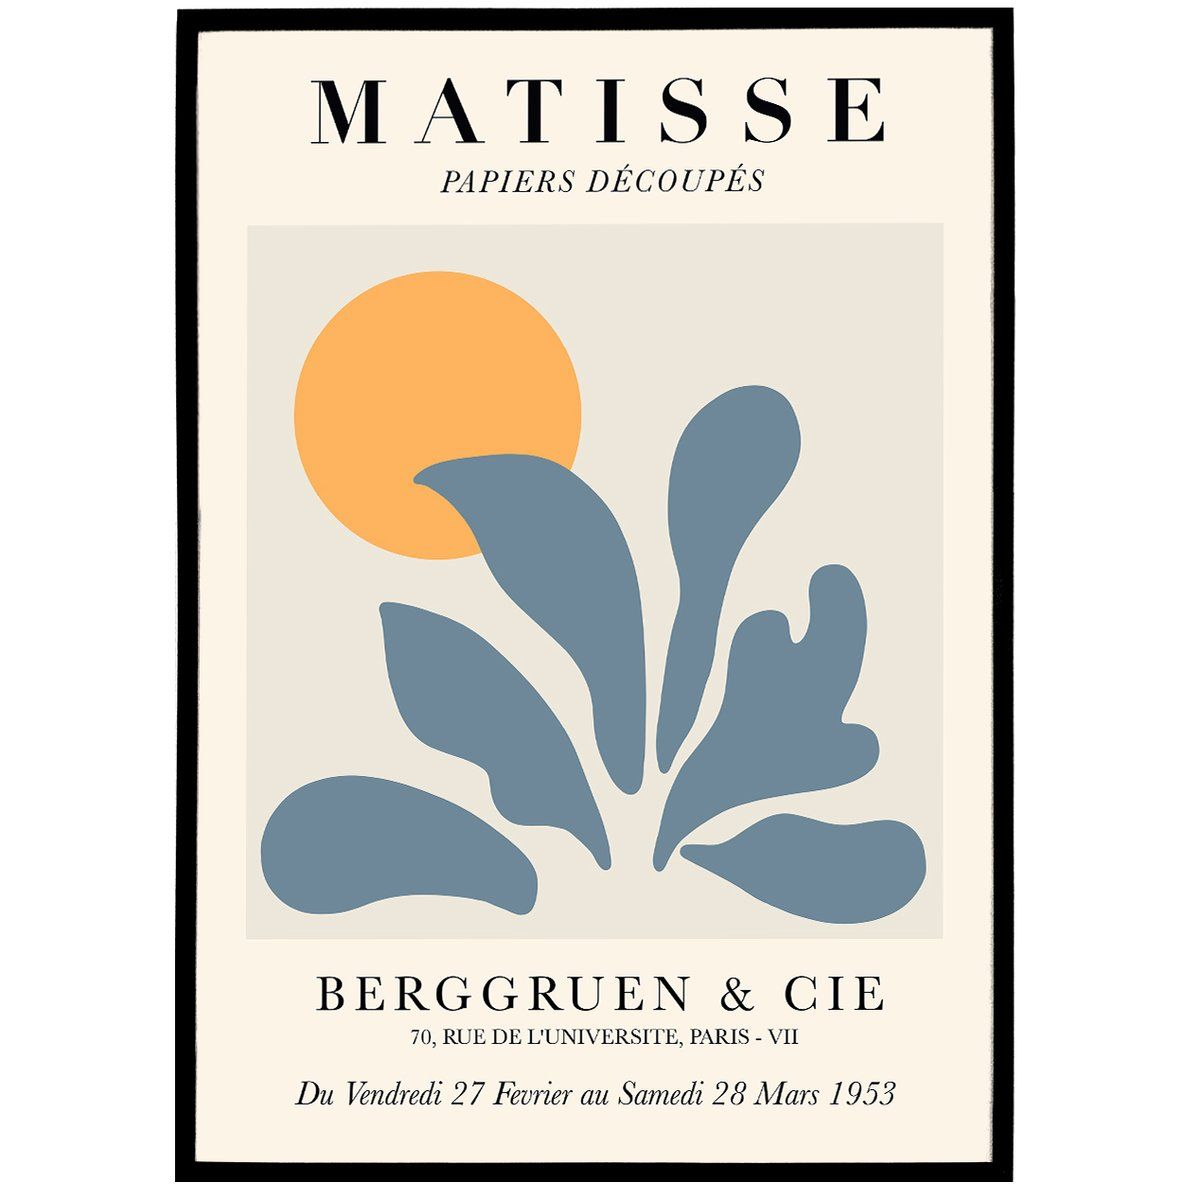 Henri Matisse Art Print Perfect To Decorate Your Home Or Office We Print Each Poster On Premium 190gsm Matte In 2020 Matisse Prints Exhibition Poster Nature Prints